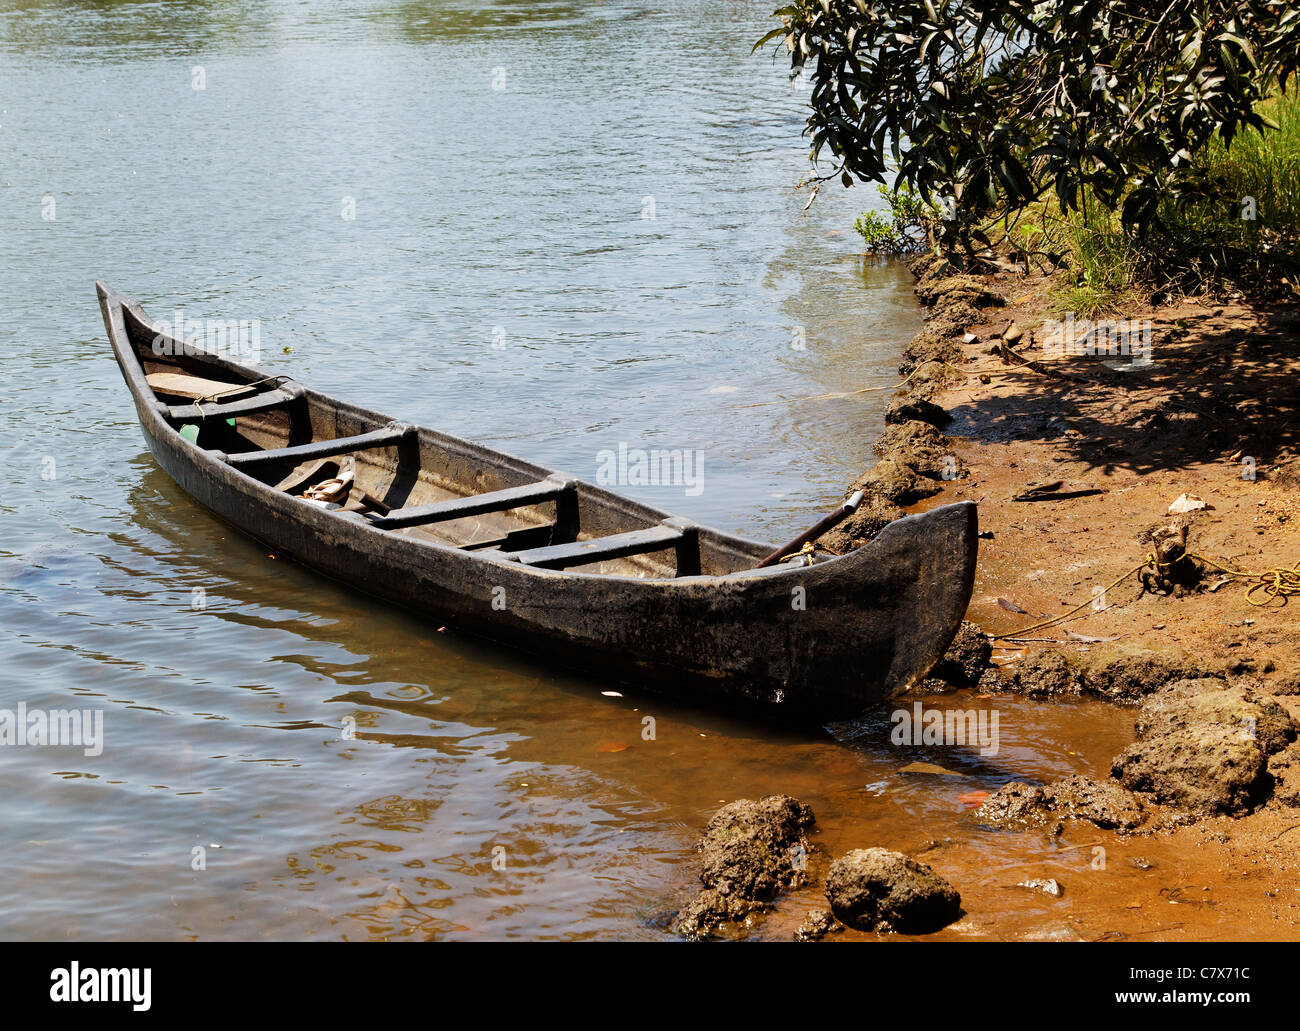 Landscape Moored Wooden Canoe Bank Side On Kerala Backwaters India Horizontal Crop Space And Copy Area